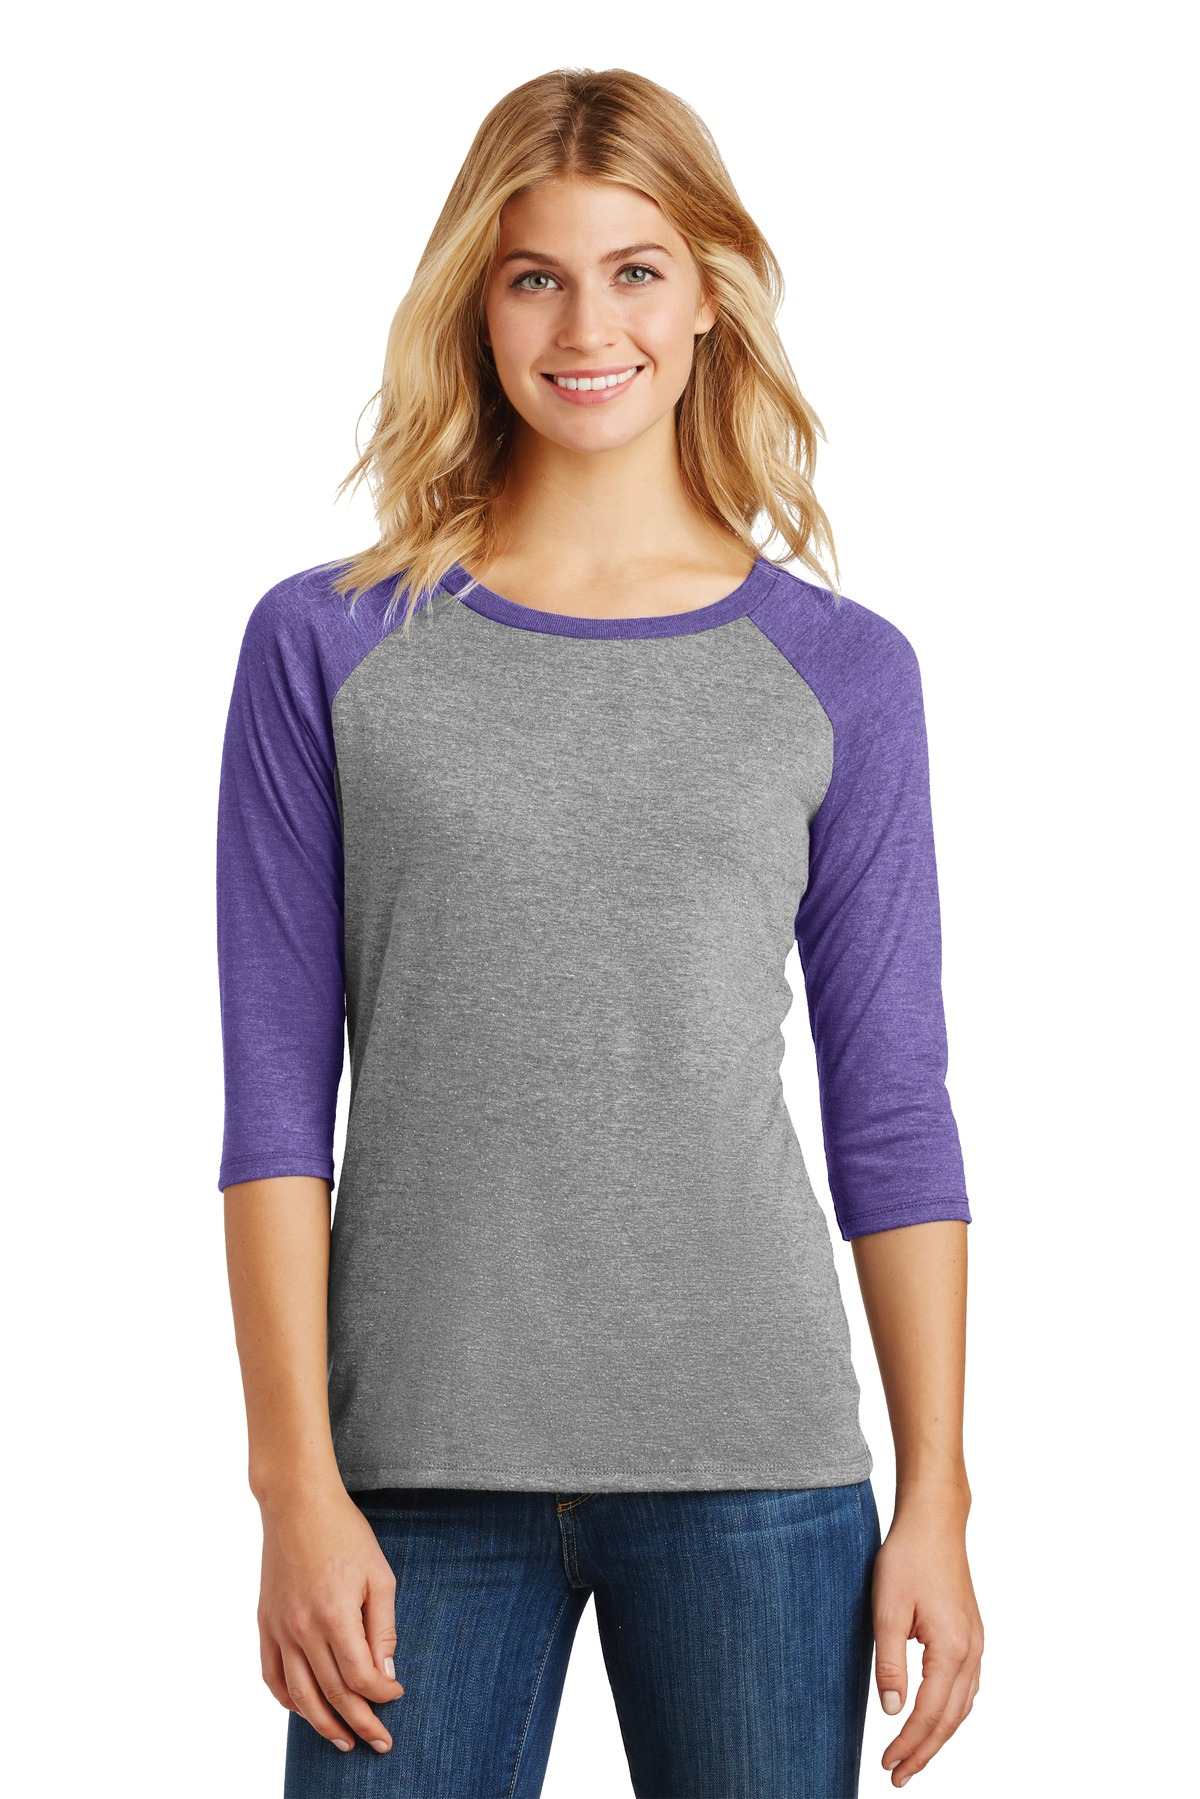 District ®  Women's Perfect Tri ®  3/4-Sleeve Raglan. DM136L - Purple Frost/ Grey Frost